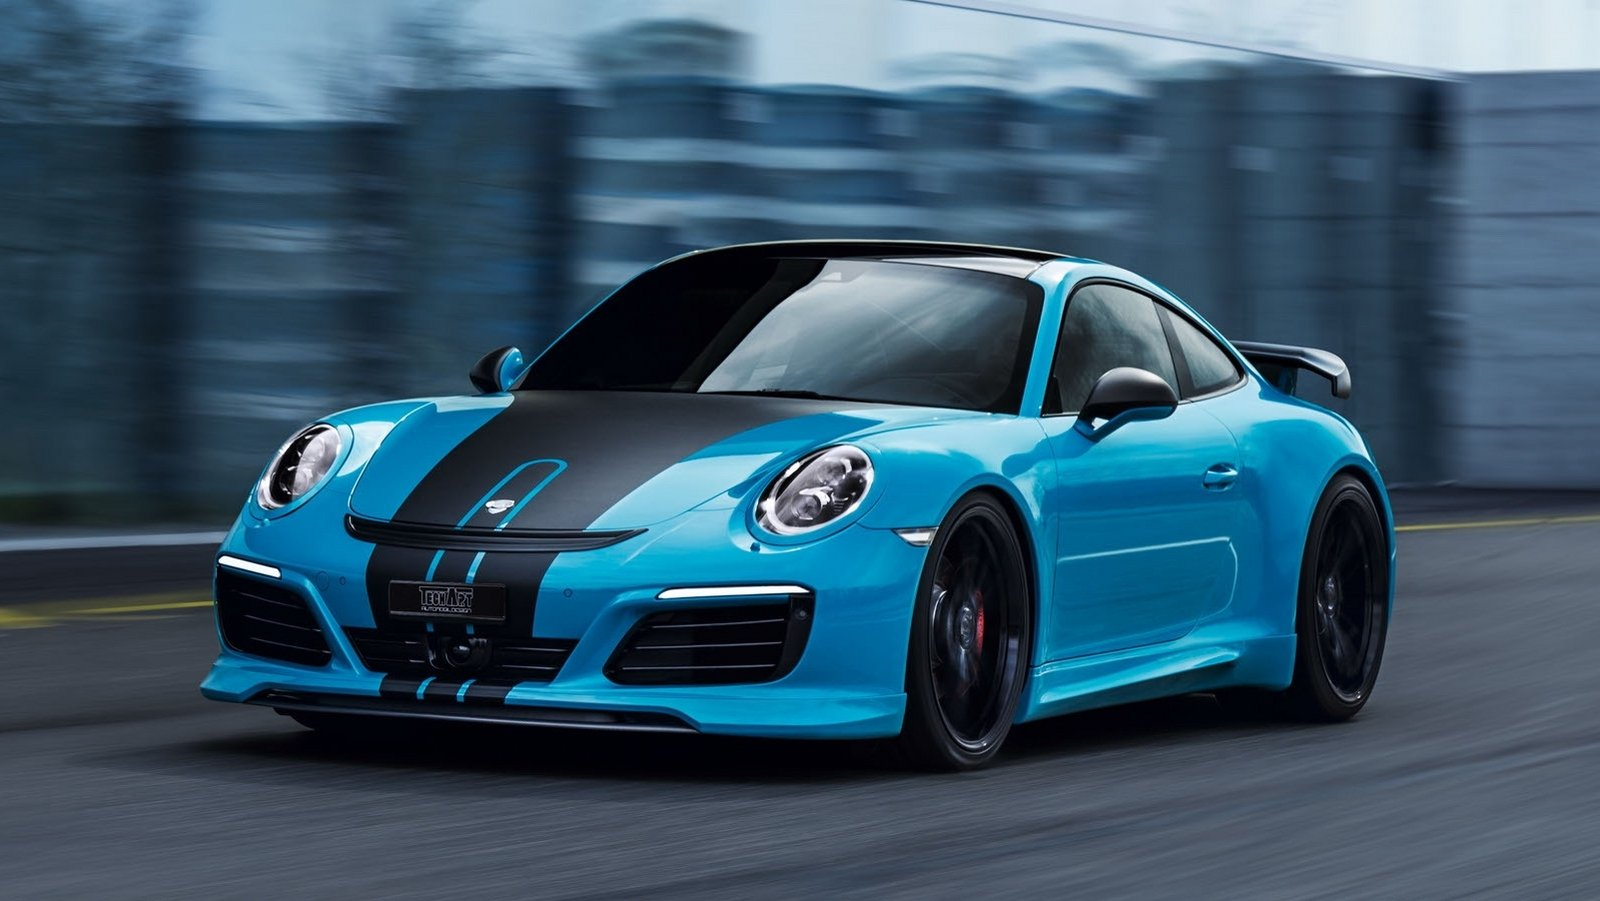 2016 Porsche 911 Turbo S By Techart Pictures Photos Wallpapers And